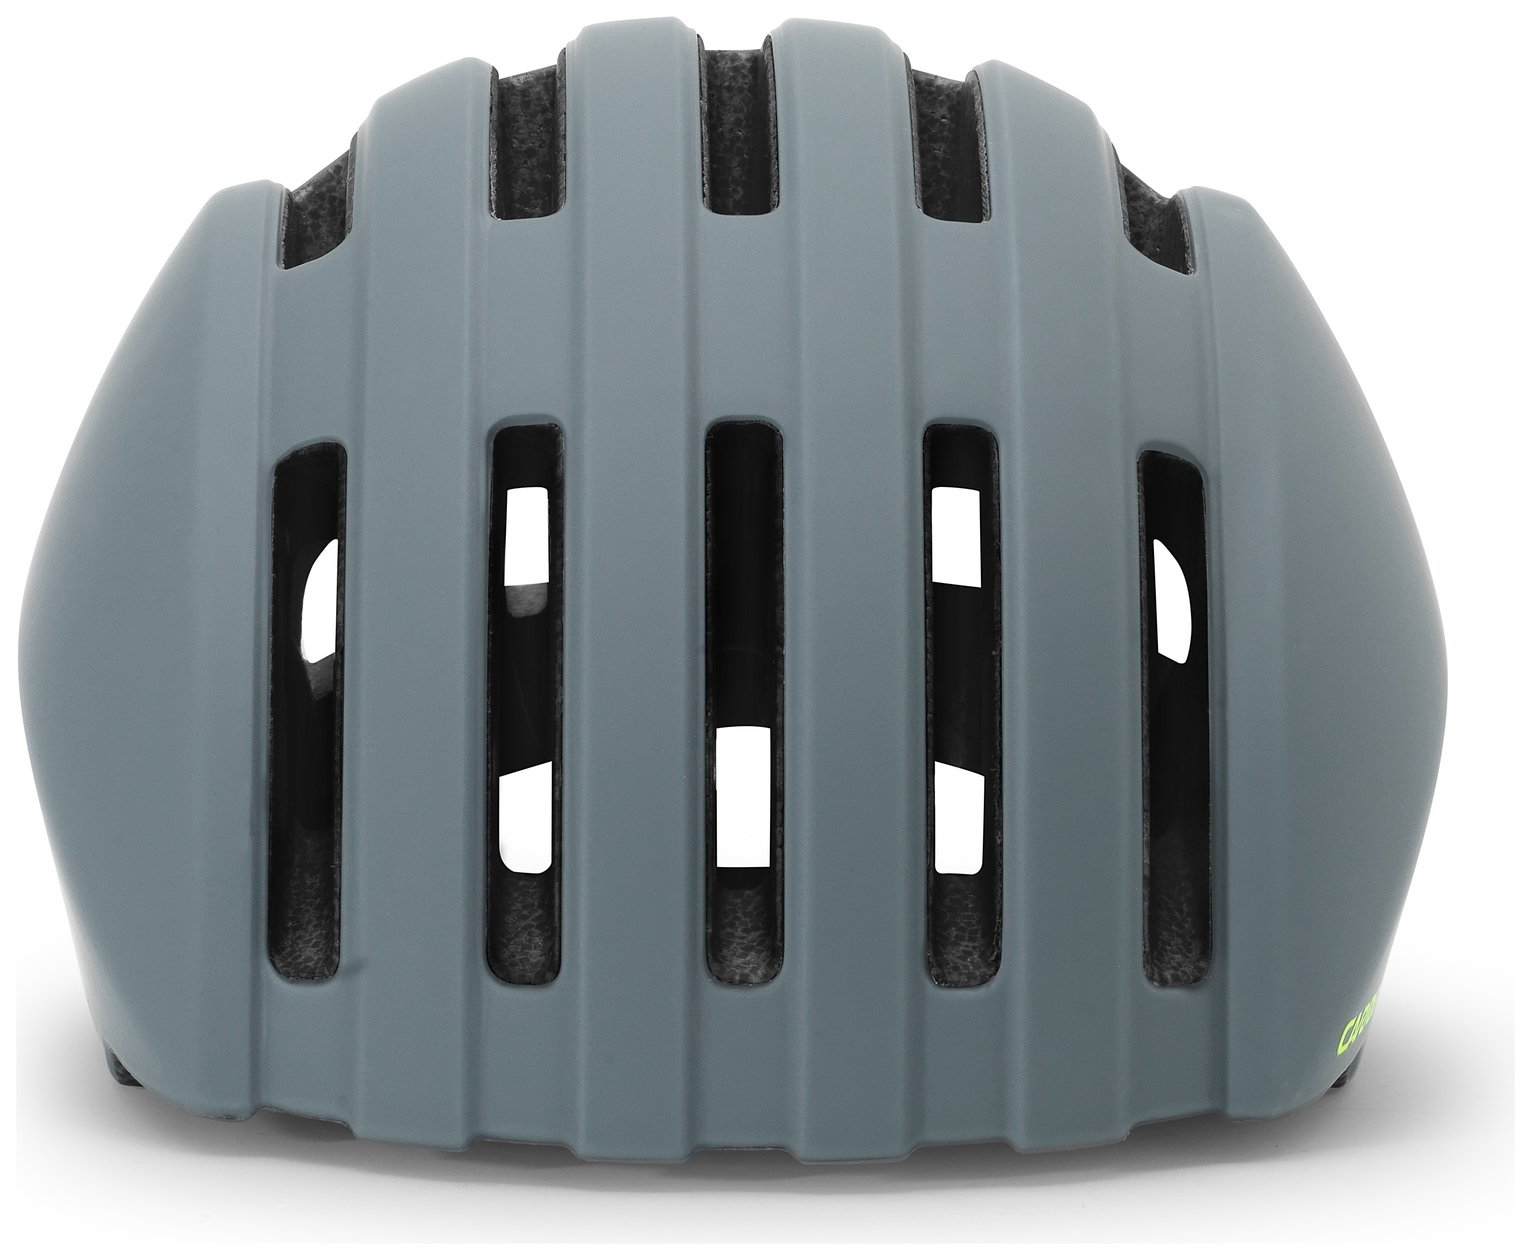 Image of Carrera Precinct Helmet - Matte Charcoal